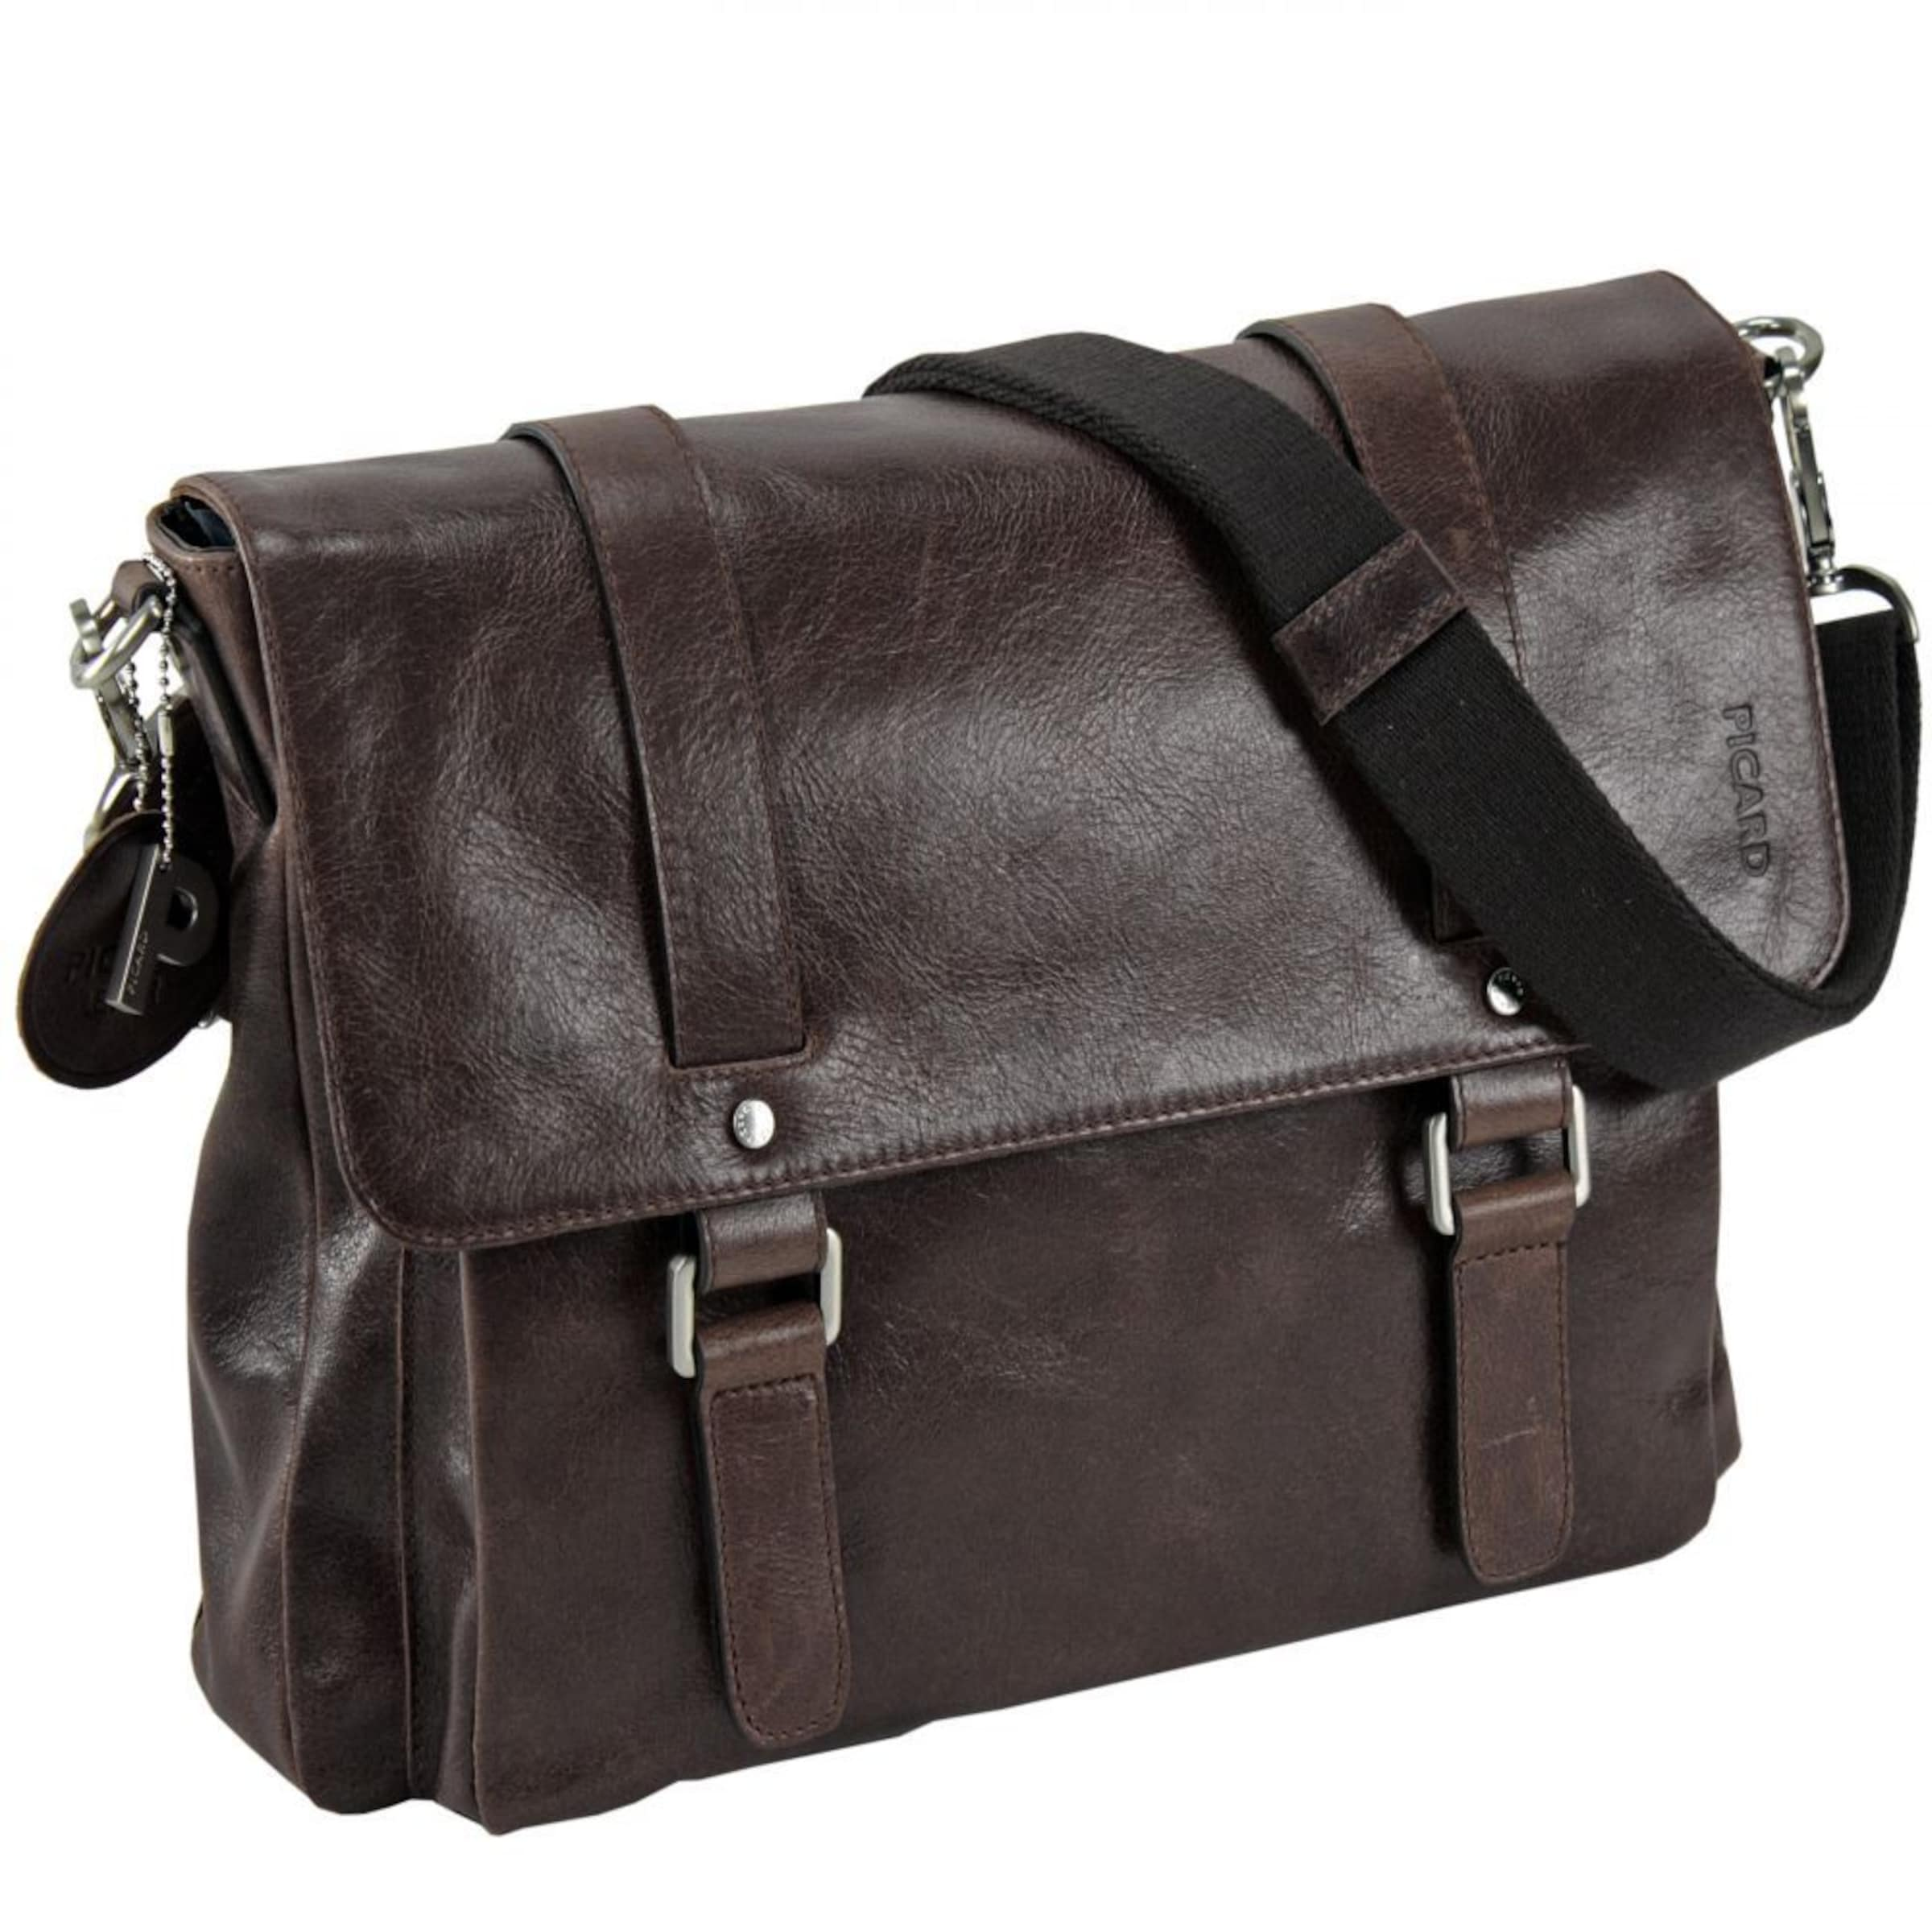 Picard tasche Buddy 37 Leder Cm Business In Braun wO0Pk8n